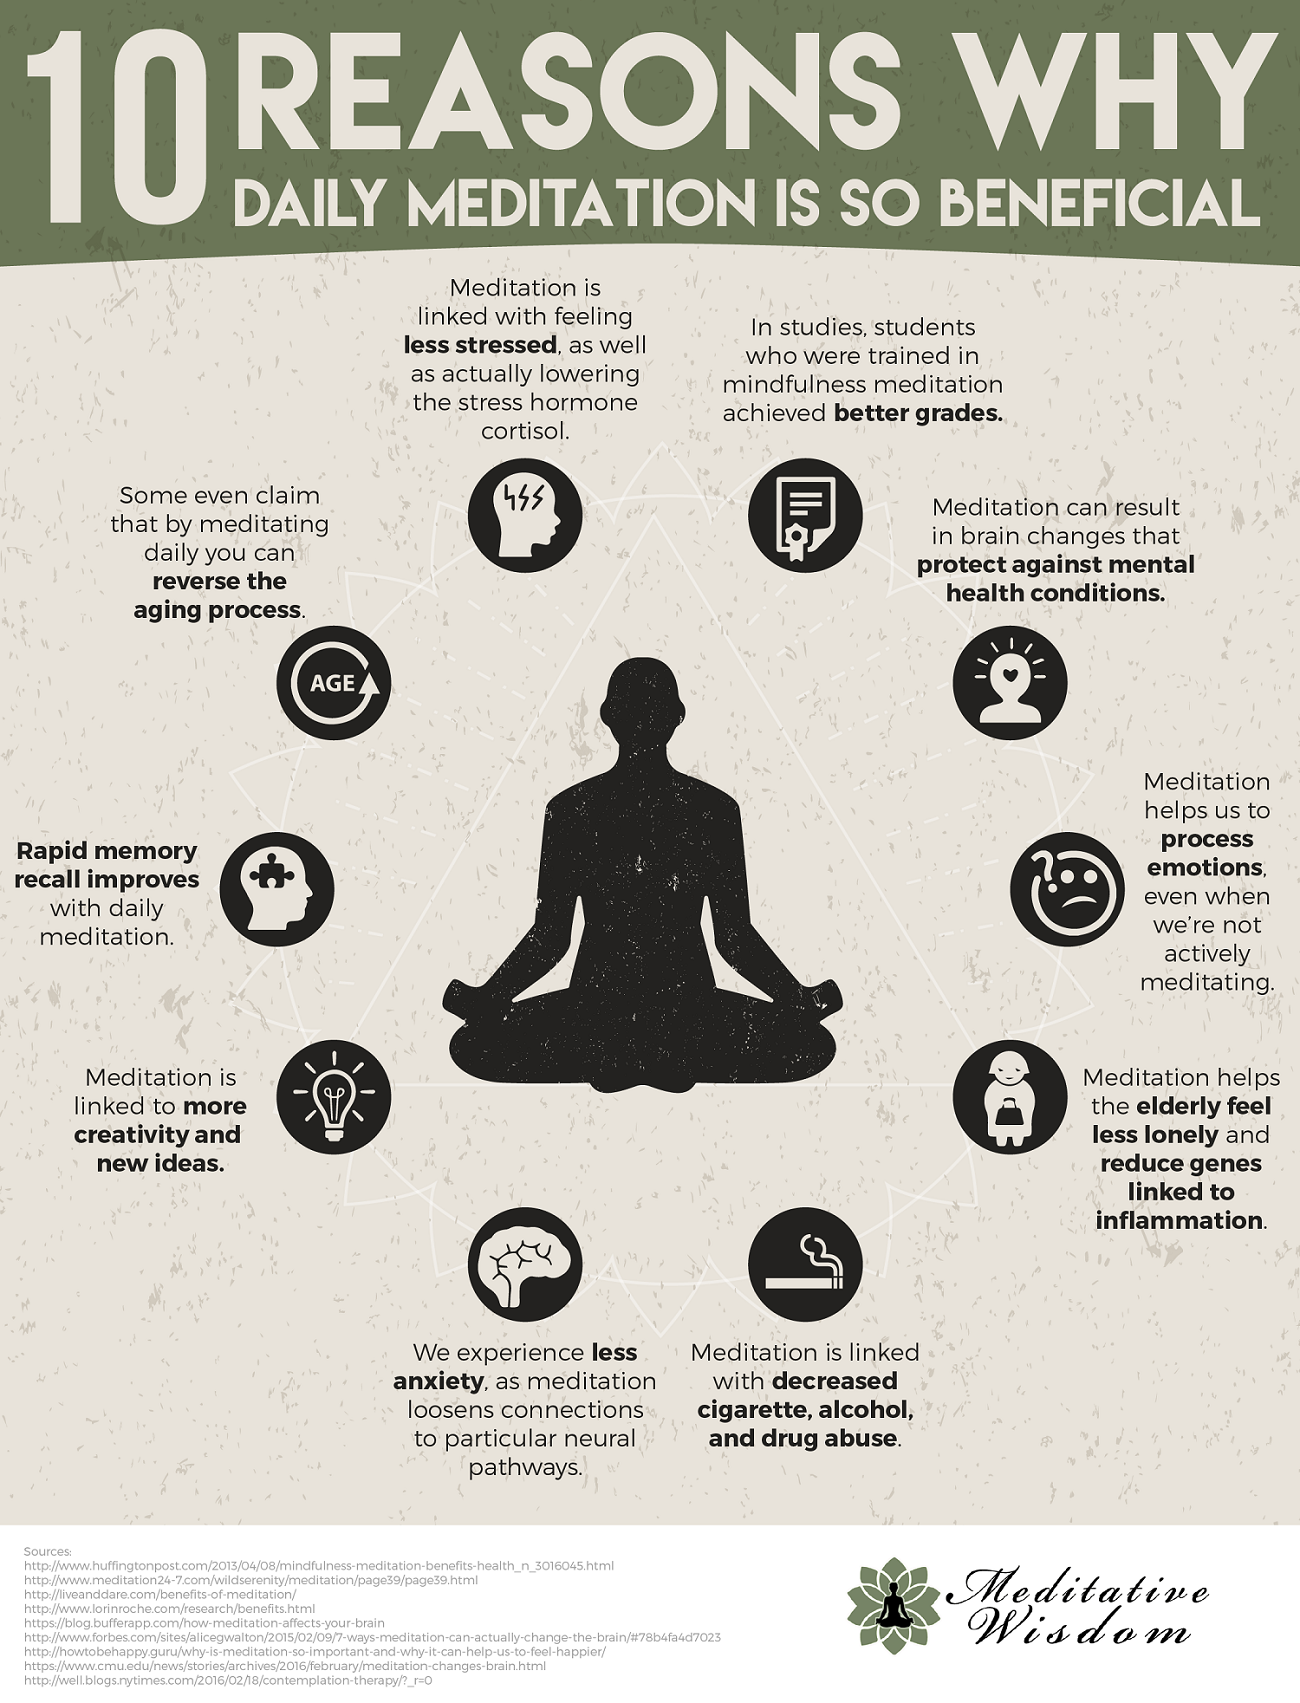 10 Reasons Why Daily Meditation is so Beneficial #Infographic